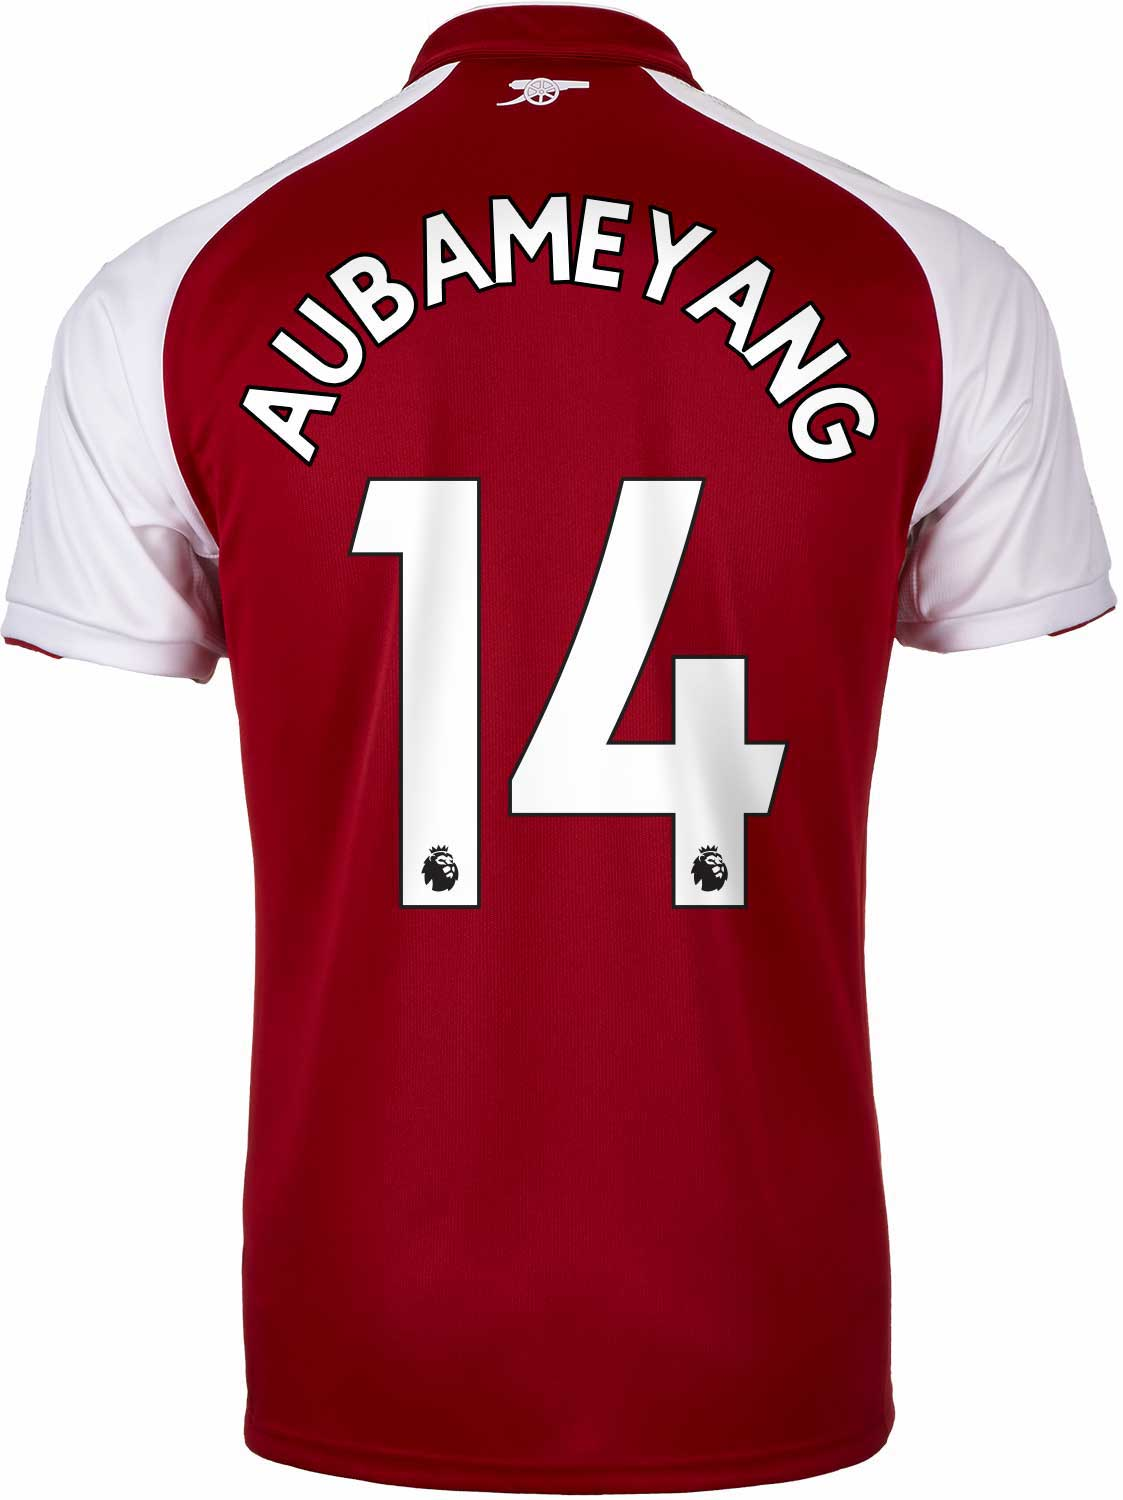 wholesale dealer bebc5 c3ccc 2017/18 Kids Puma Arsenal Aubameyang Home Jersey - SoccerPro